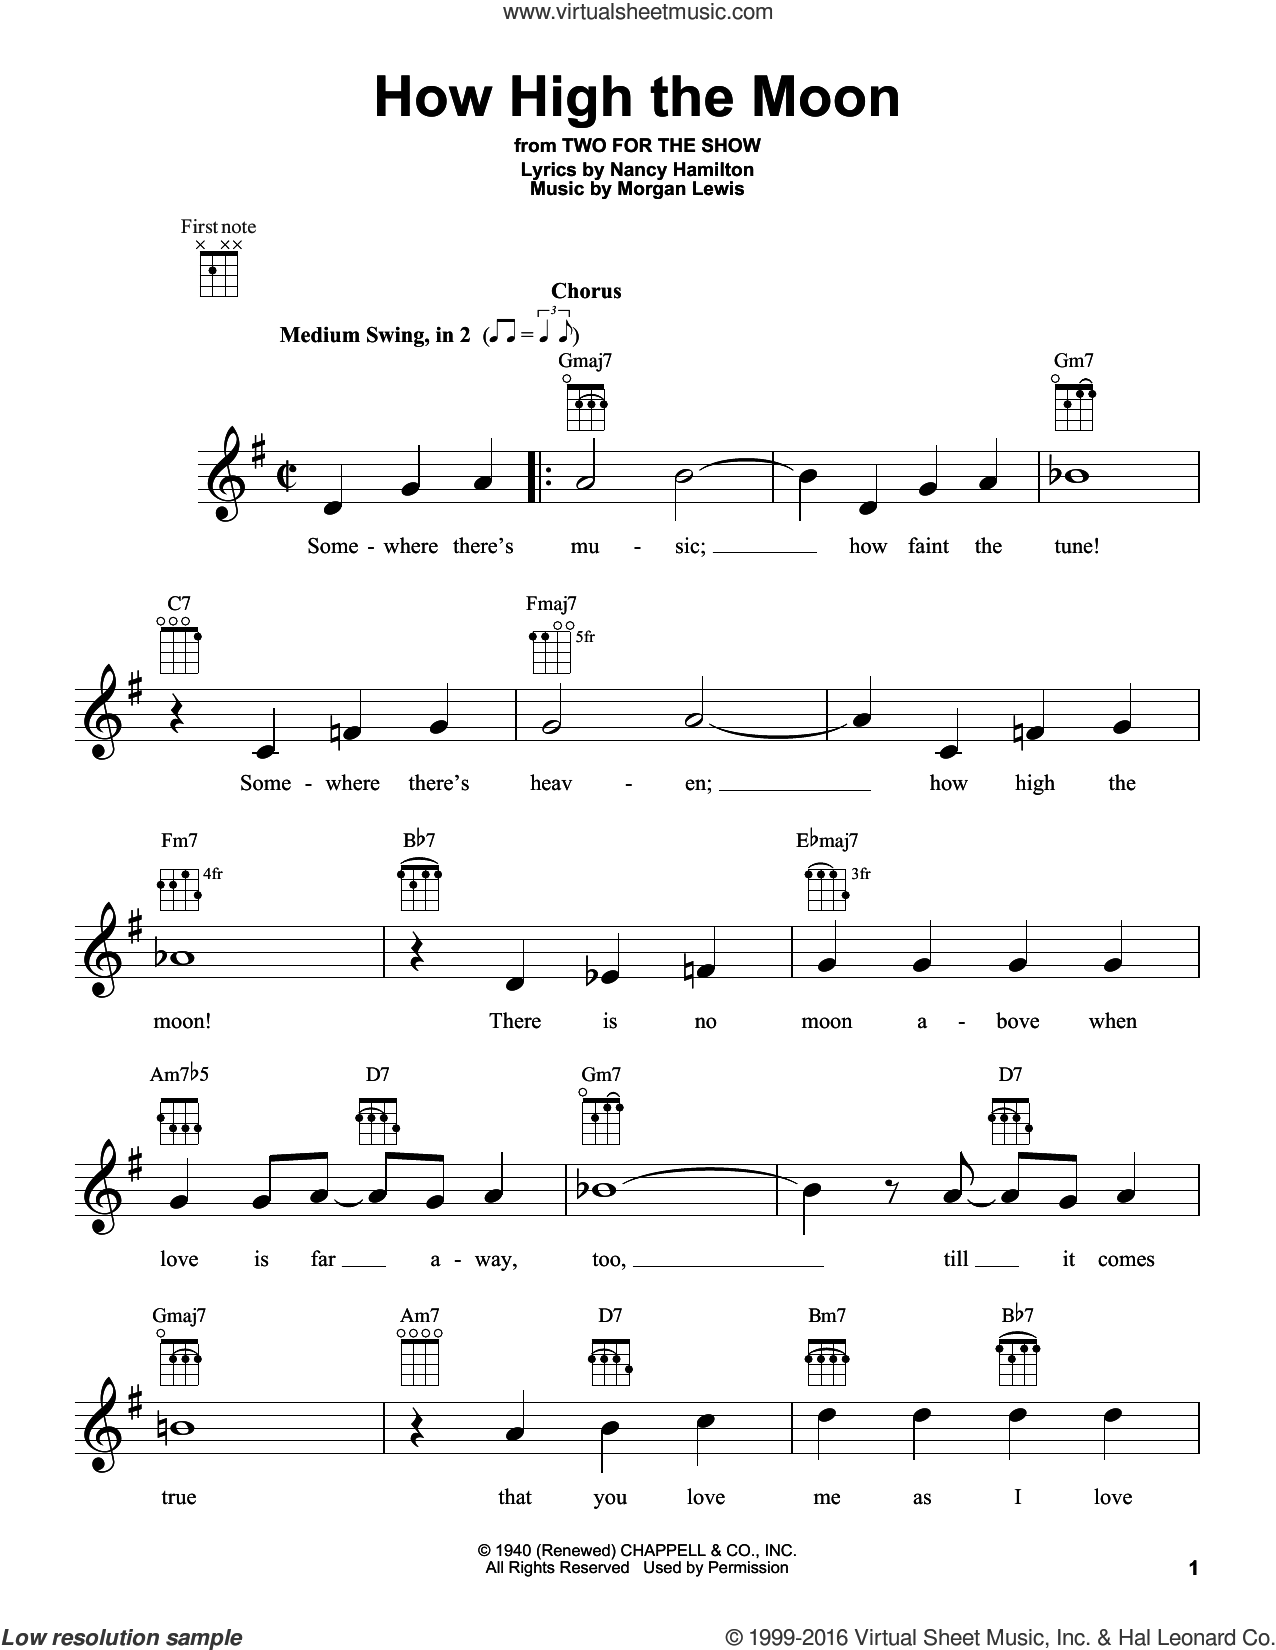 How High The Moon sheet music for ukulele by Morgan Lewis, Les Paul & Mary Ford and Nancy Hamilton, intermediate skill level